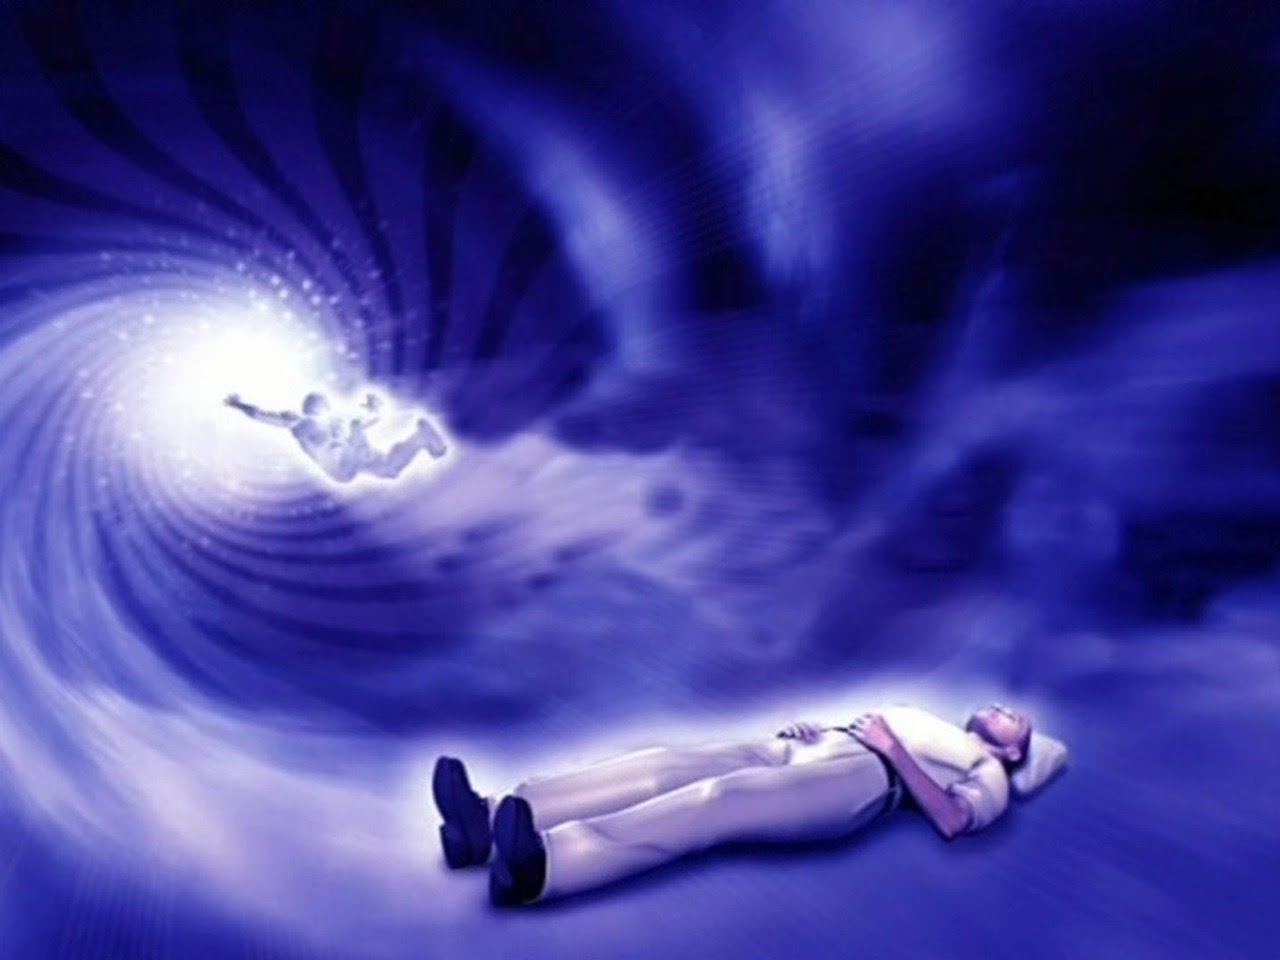 6 Potent Ways To Achieve An Astral Projection Right Now